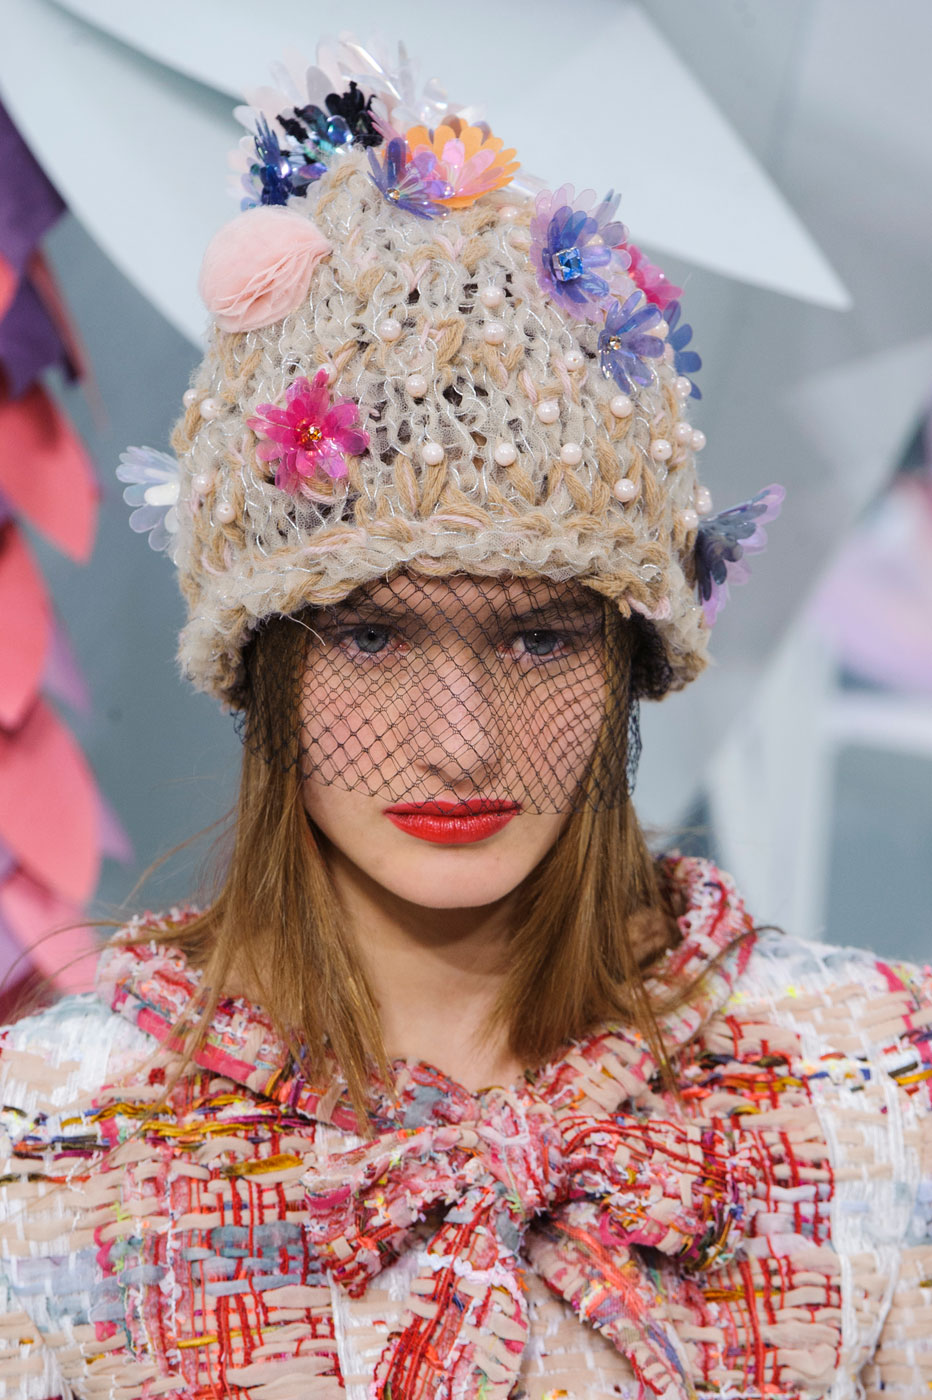 Chanel-fashion-runway-show-close-ups-haute-couture-paris-spring-summer-2015-the-impression-057